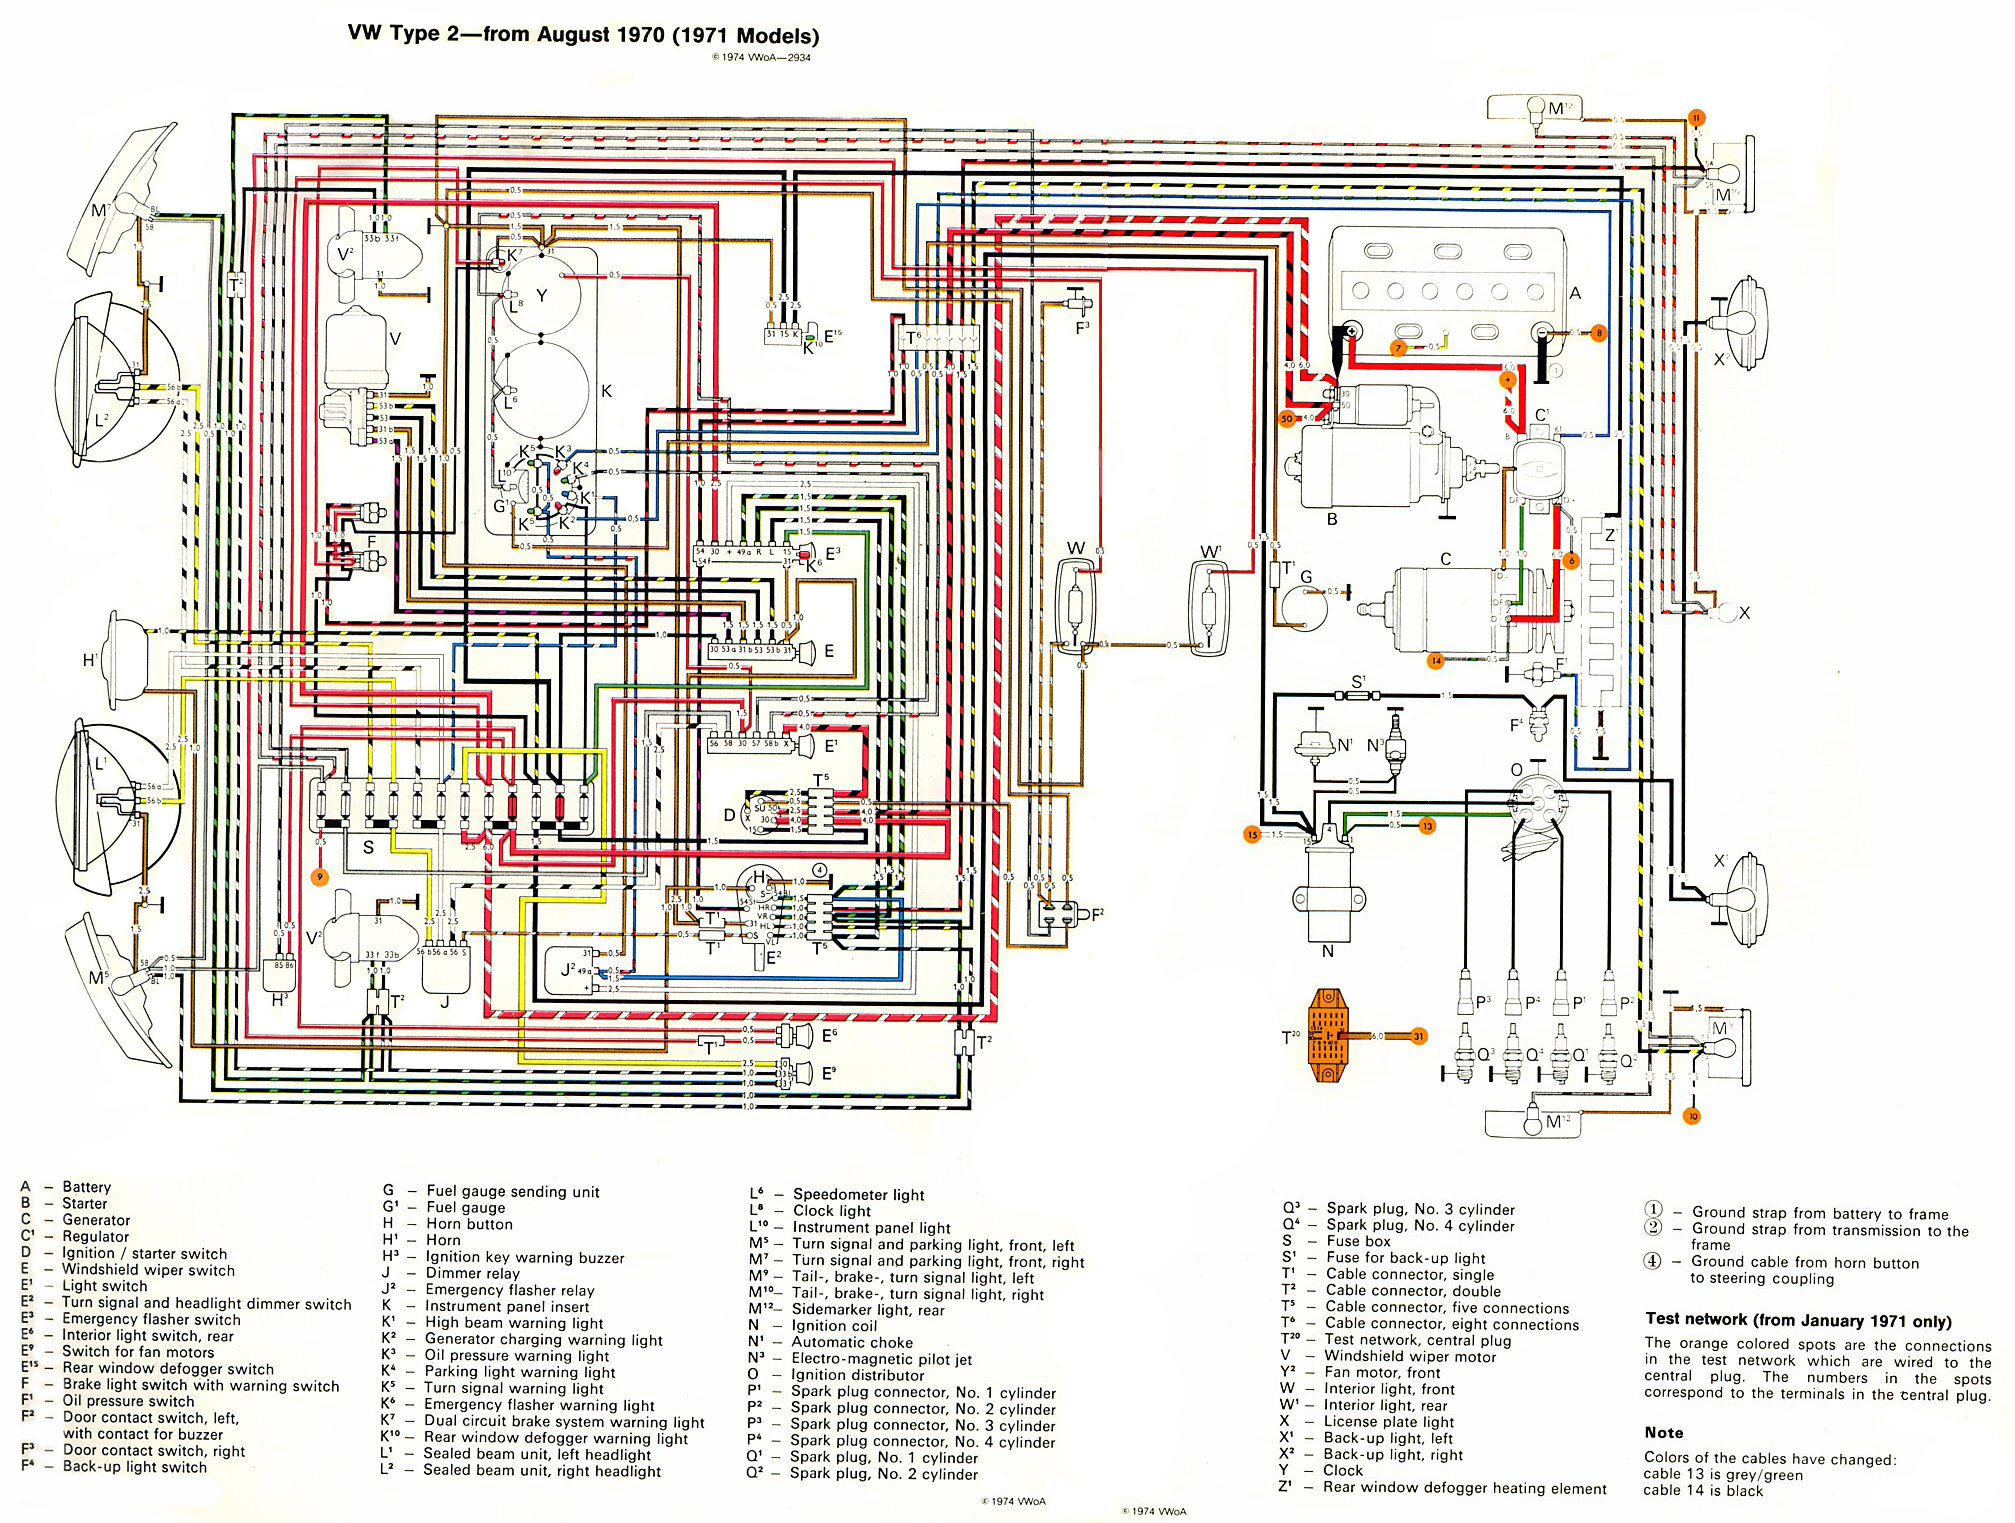 baybus_71_fixed thesamba com type 2 wiring diagrams bad boy buggy battery wiring diagram at bayanpartner.co